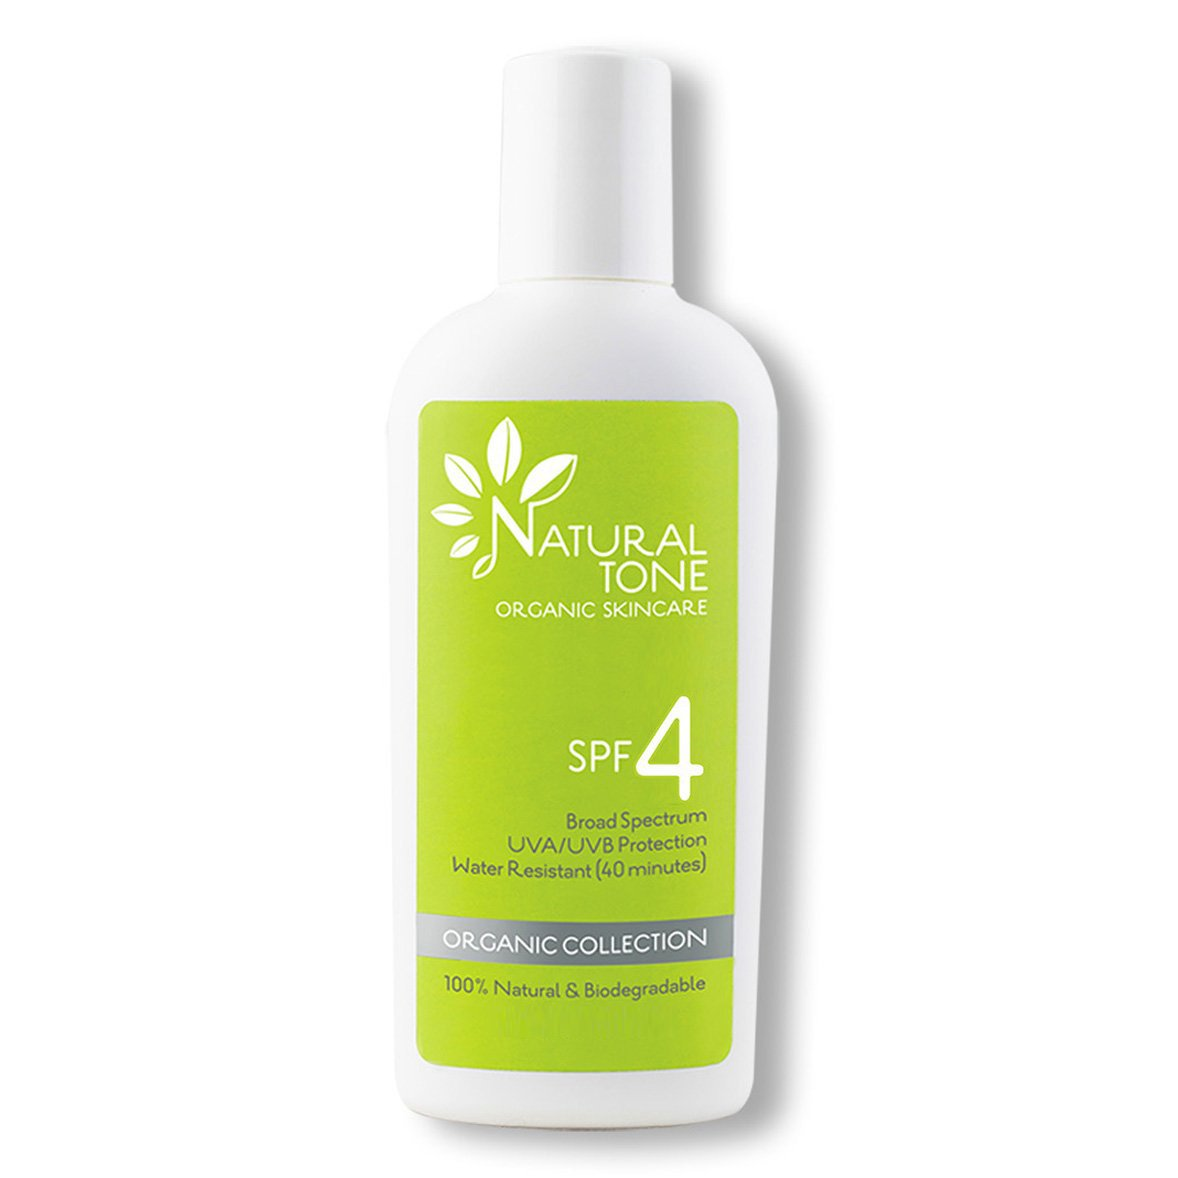 SPF 4 Natural Sunscreen - Natural Tone Organic Skincare